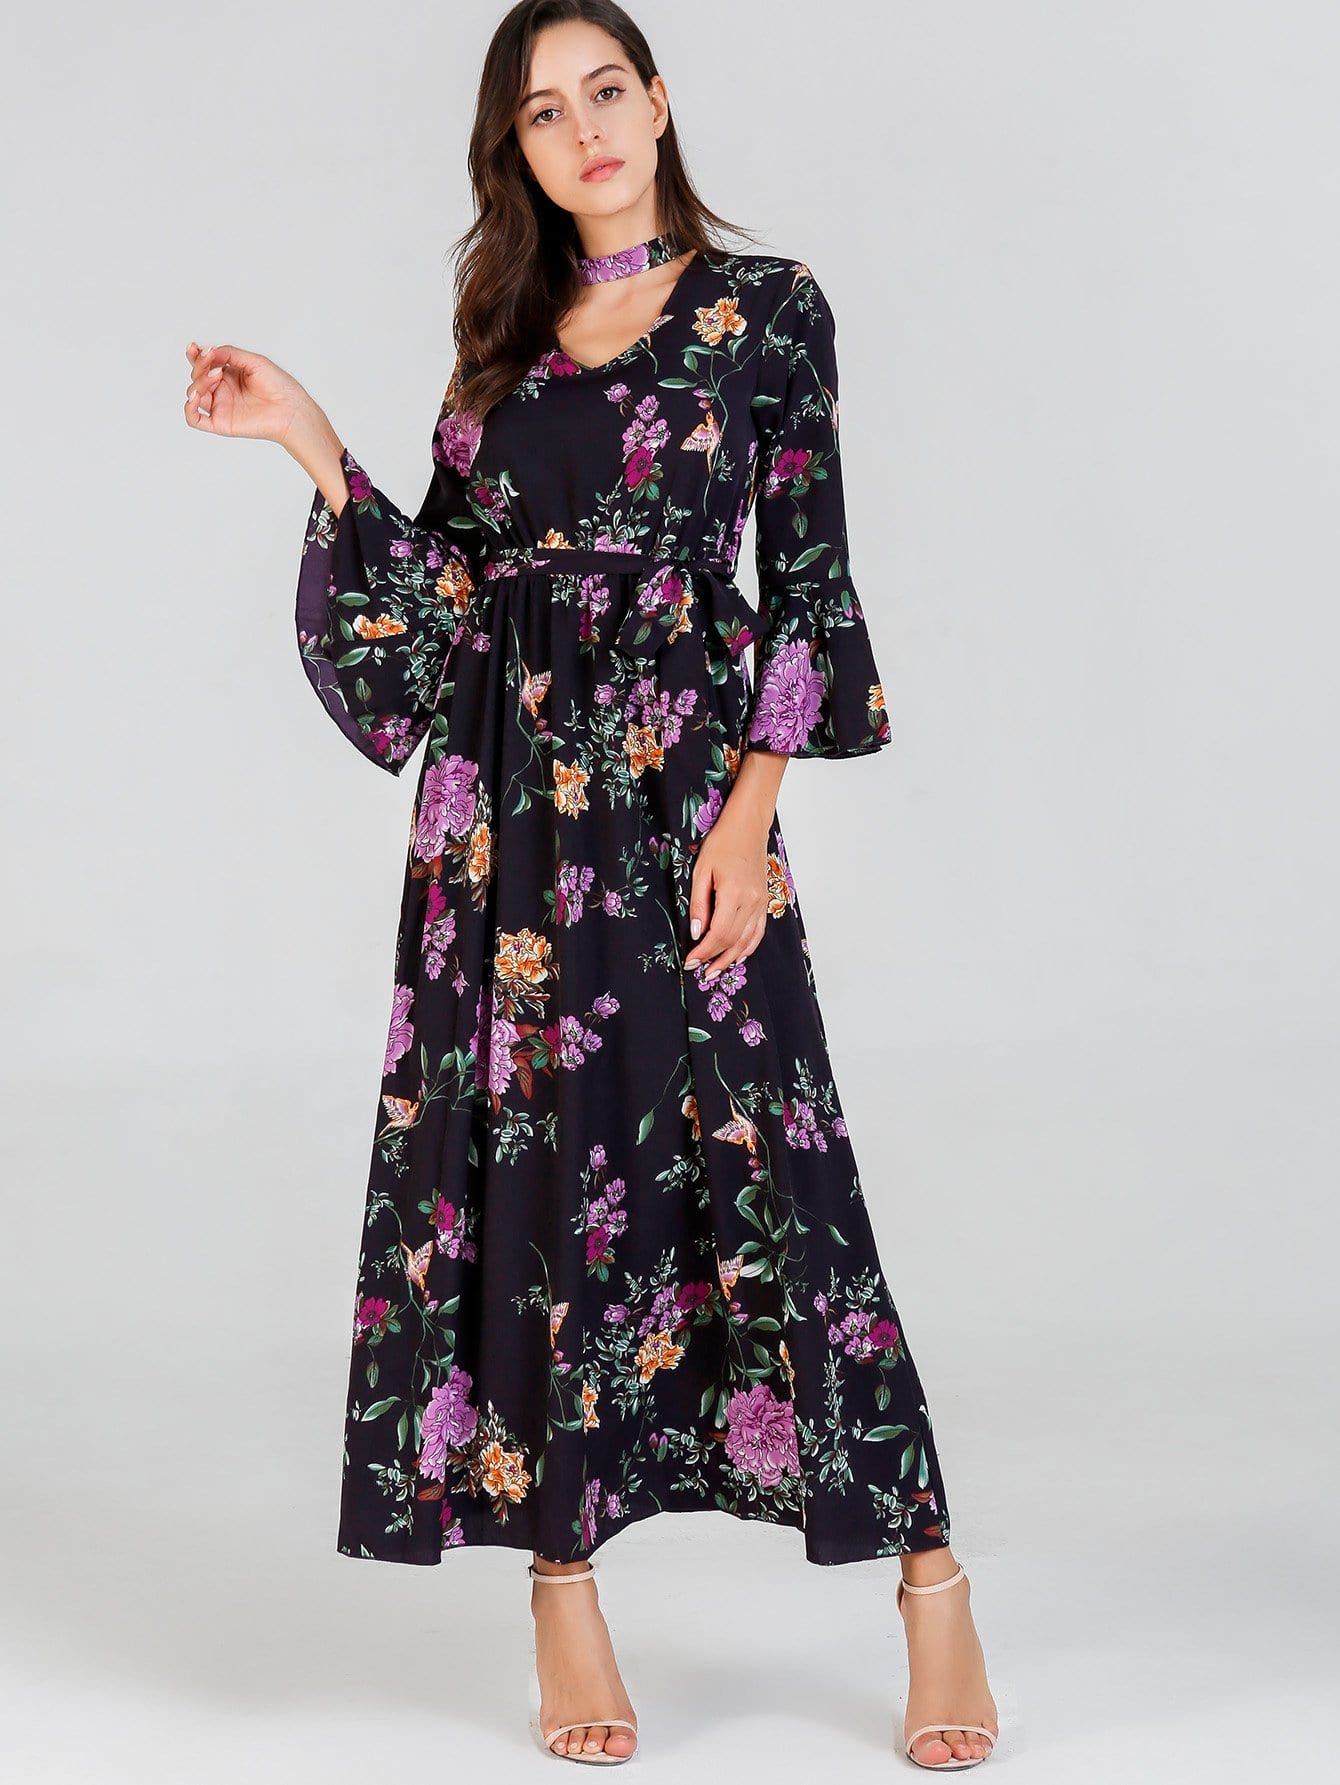 Waist Belted Bell Sleeve Floral Dress bohemian bell sleeve floral midi dress